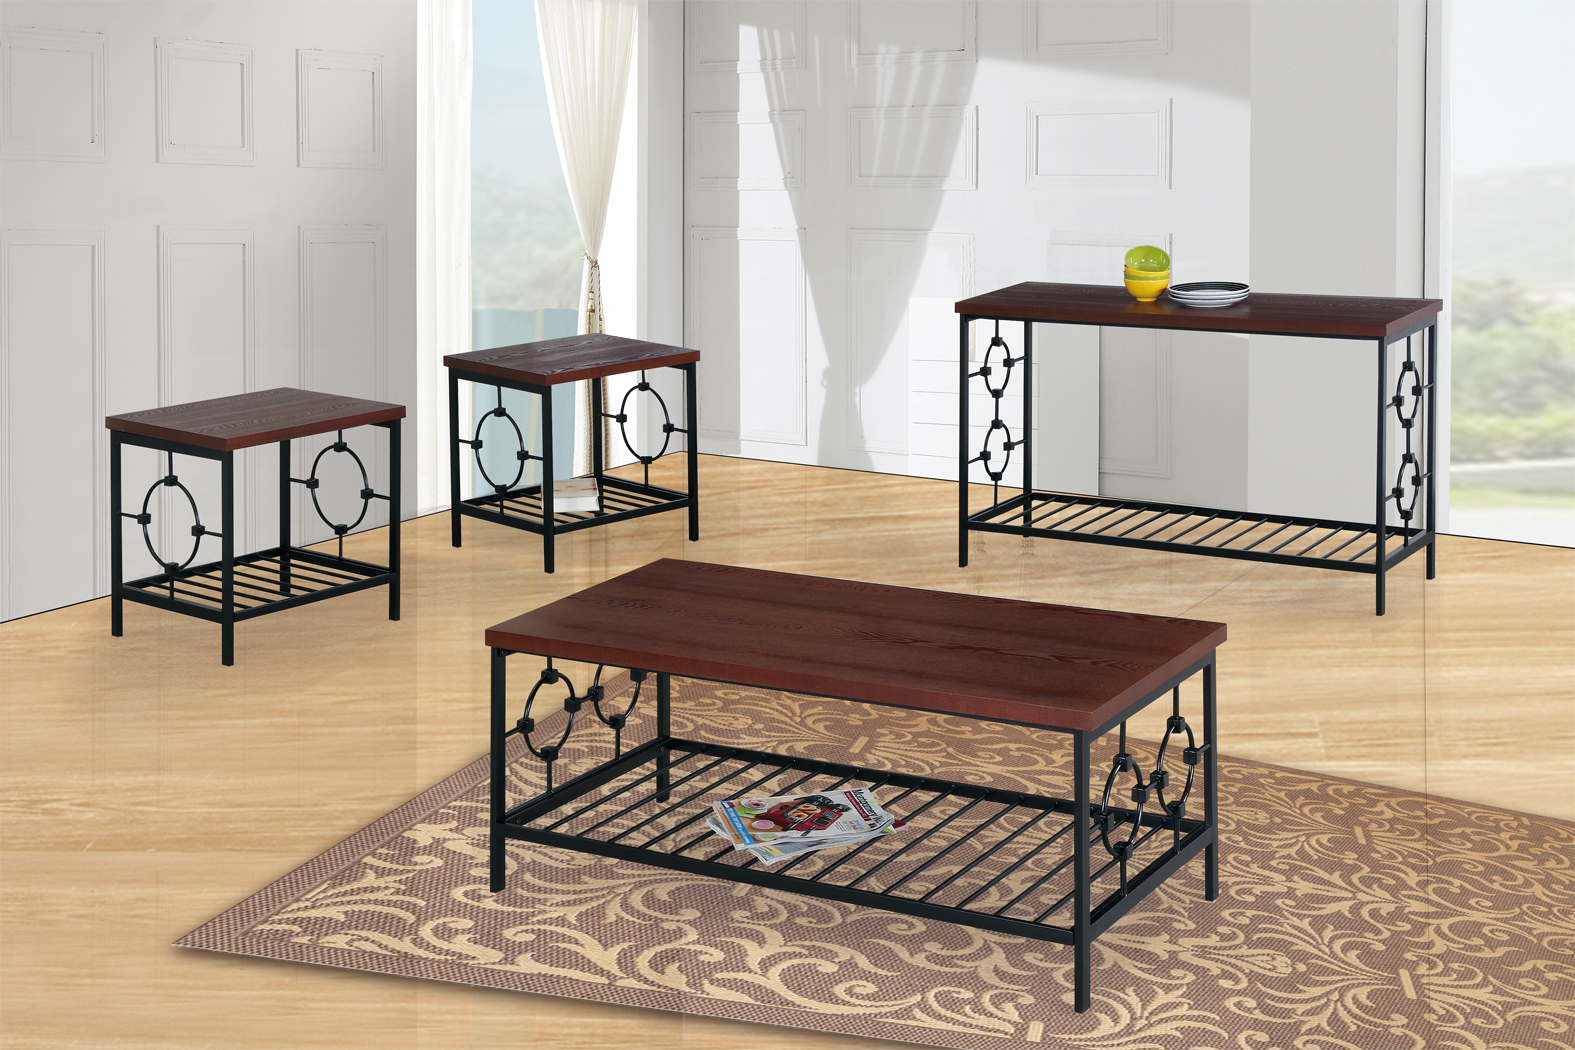 GS-CT809 3PC OCCASIONAL TABLE SET